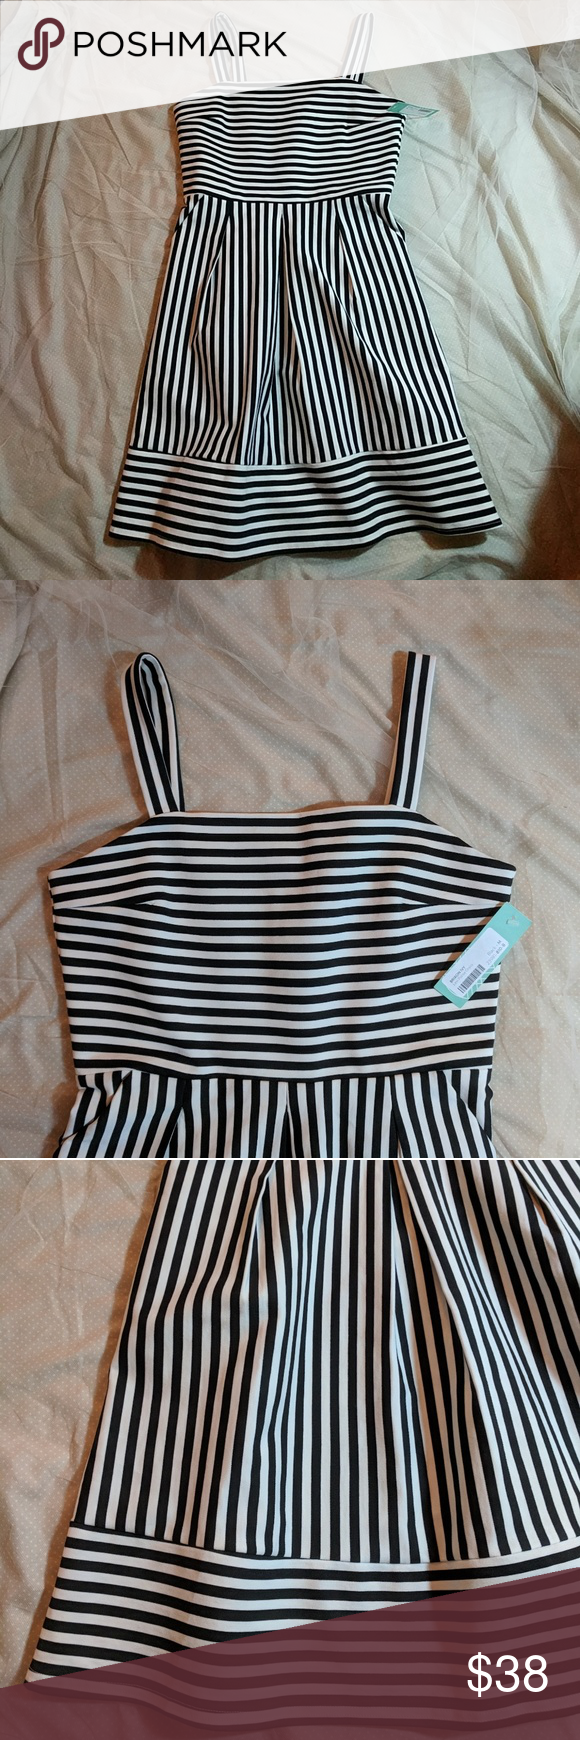 9739ed2c4aa NWT Brixon Ivy Ponte Black and White Striped Dress Brand new dress called  the Levi Ponte